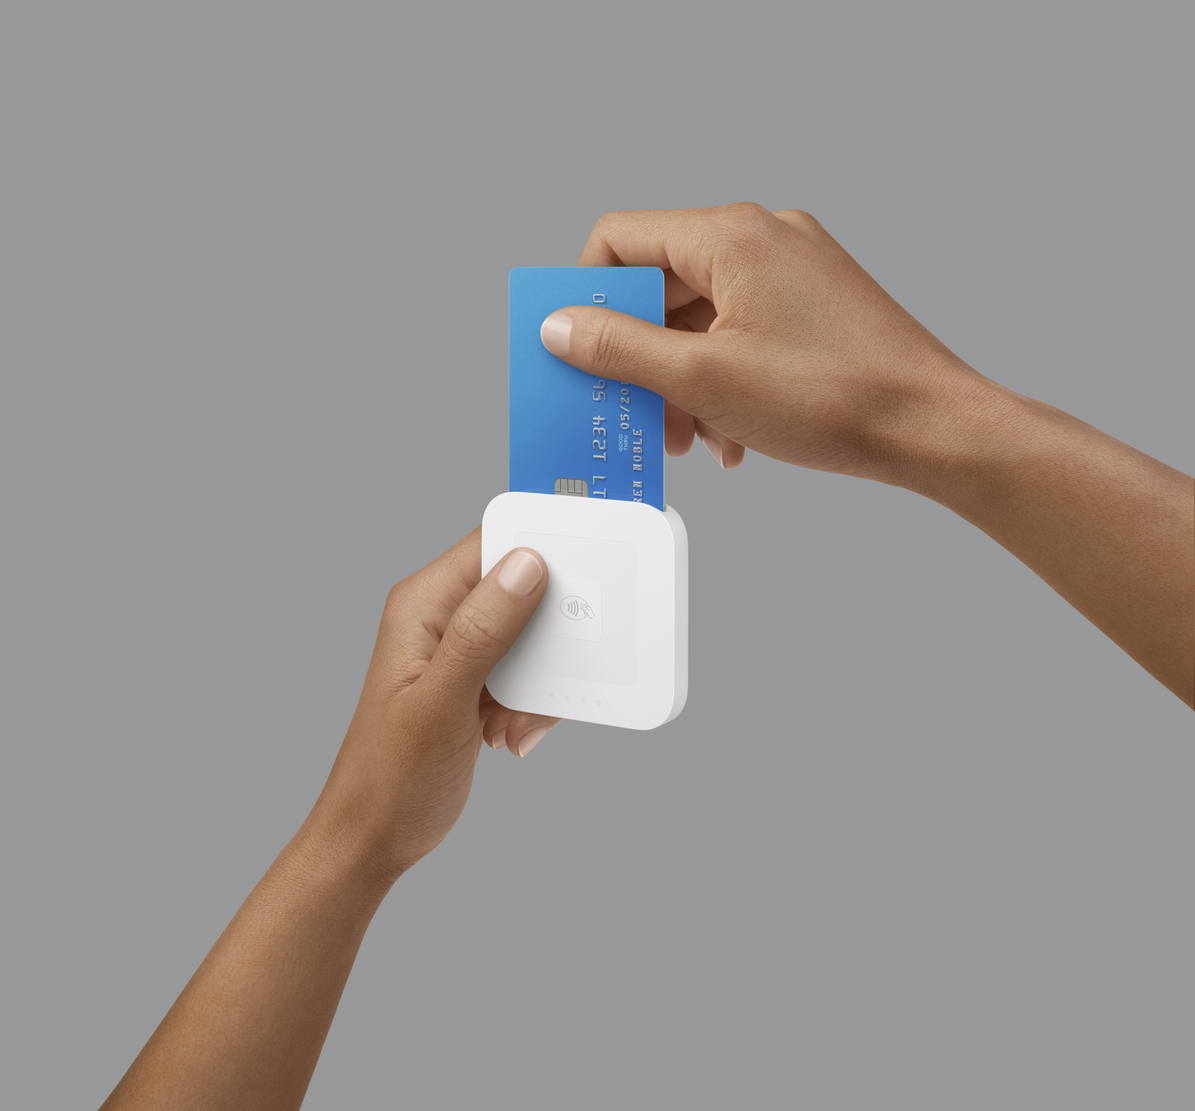 Square's upgraded EMV and NFC card reader